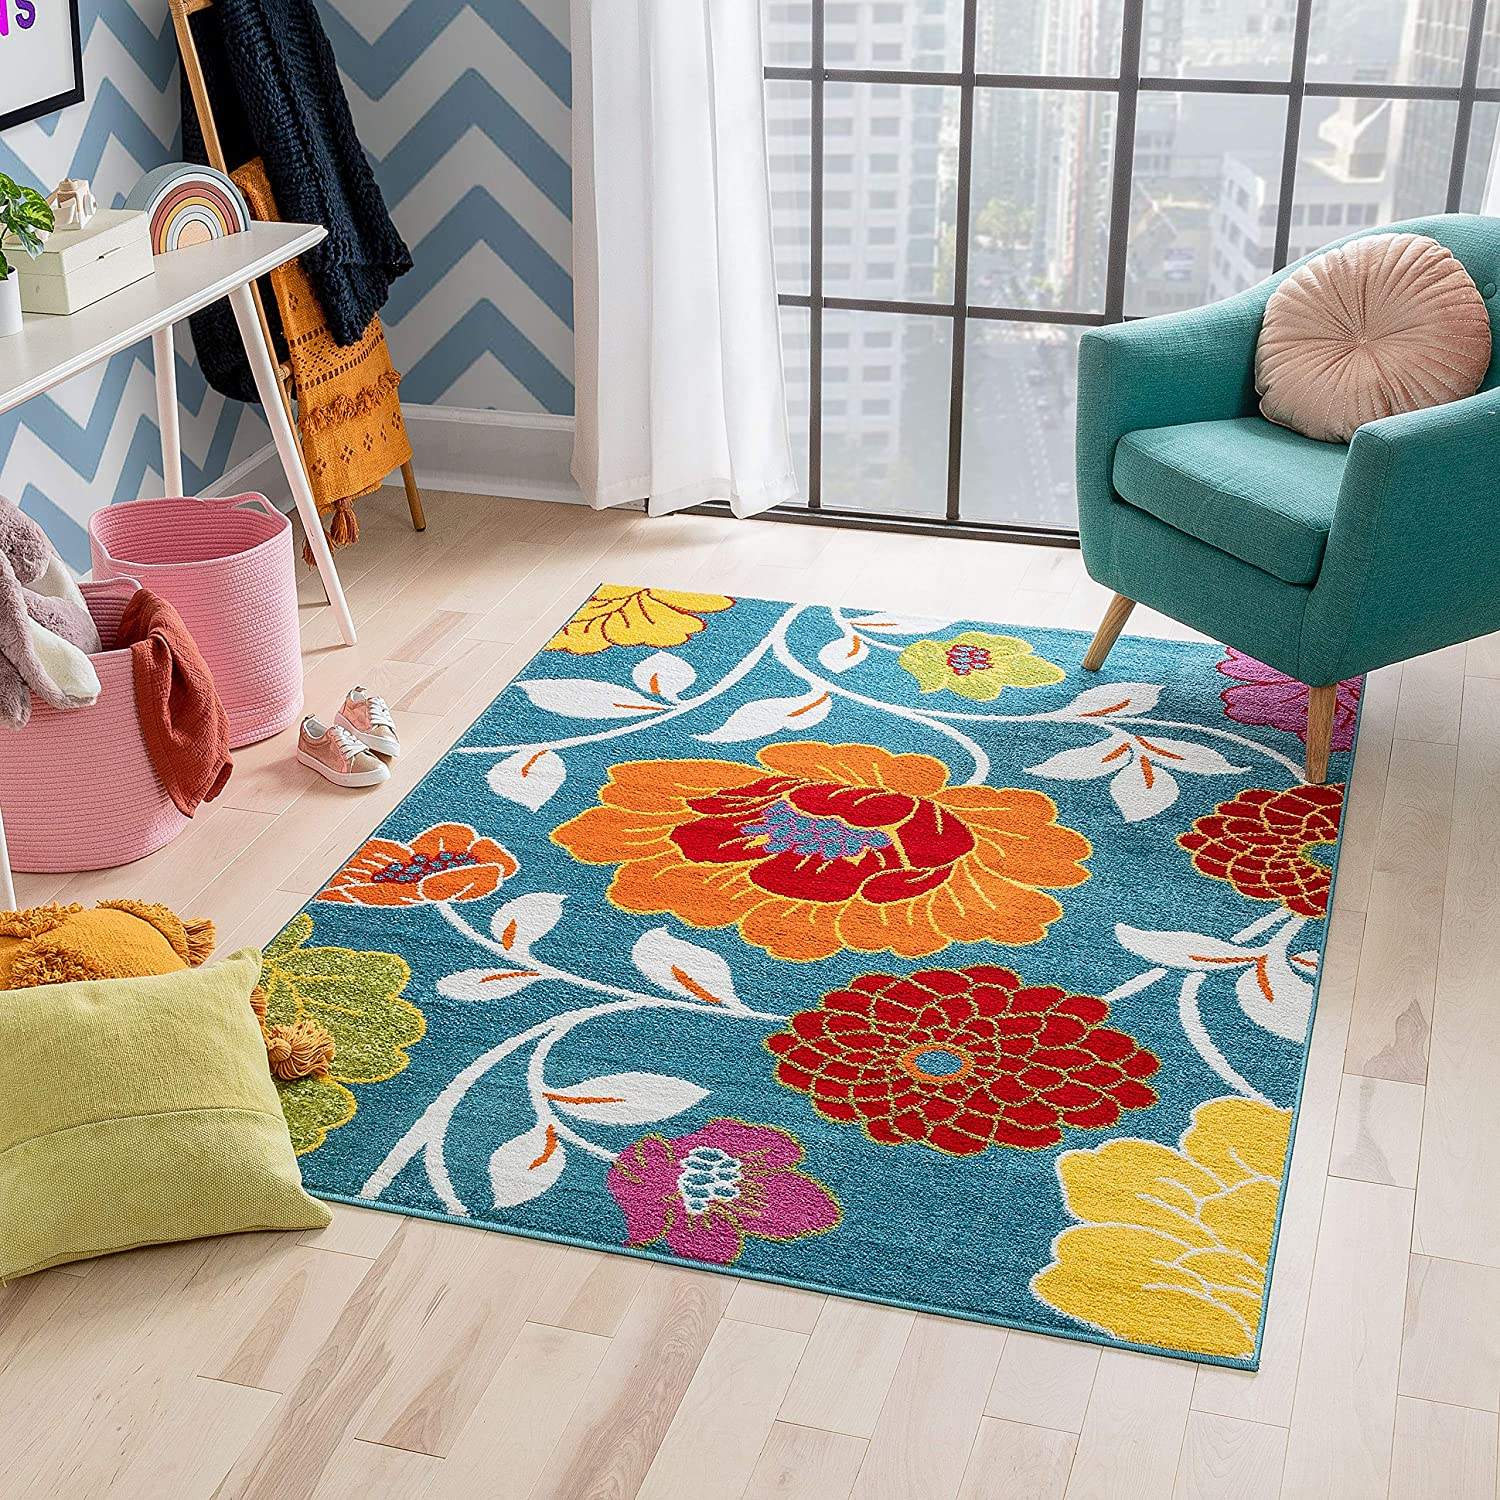 Well Woven Modern Rug Daisy Flowers Blue 3 3 X 5 Floral Accent Area Rug Entry Way Bright Kids Room Kitchen Bedroom Carpet Bathroom Soft Durable Area Rug Furniture Decor